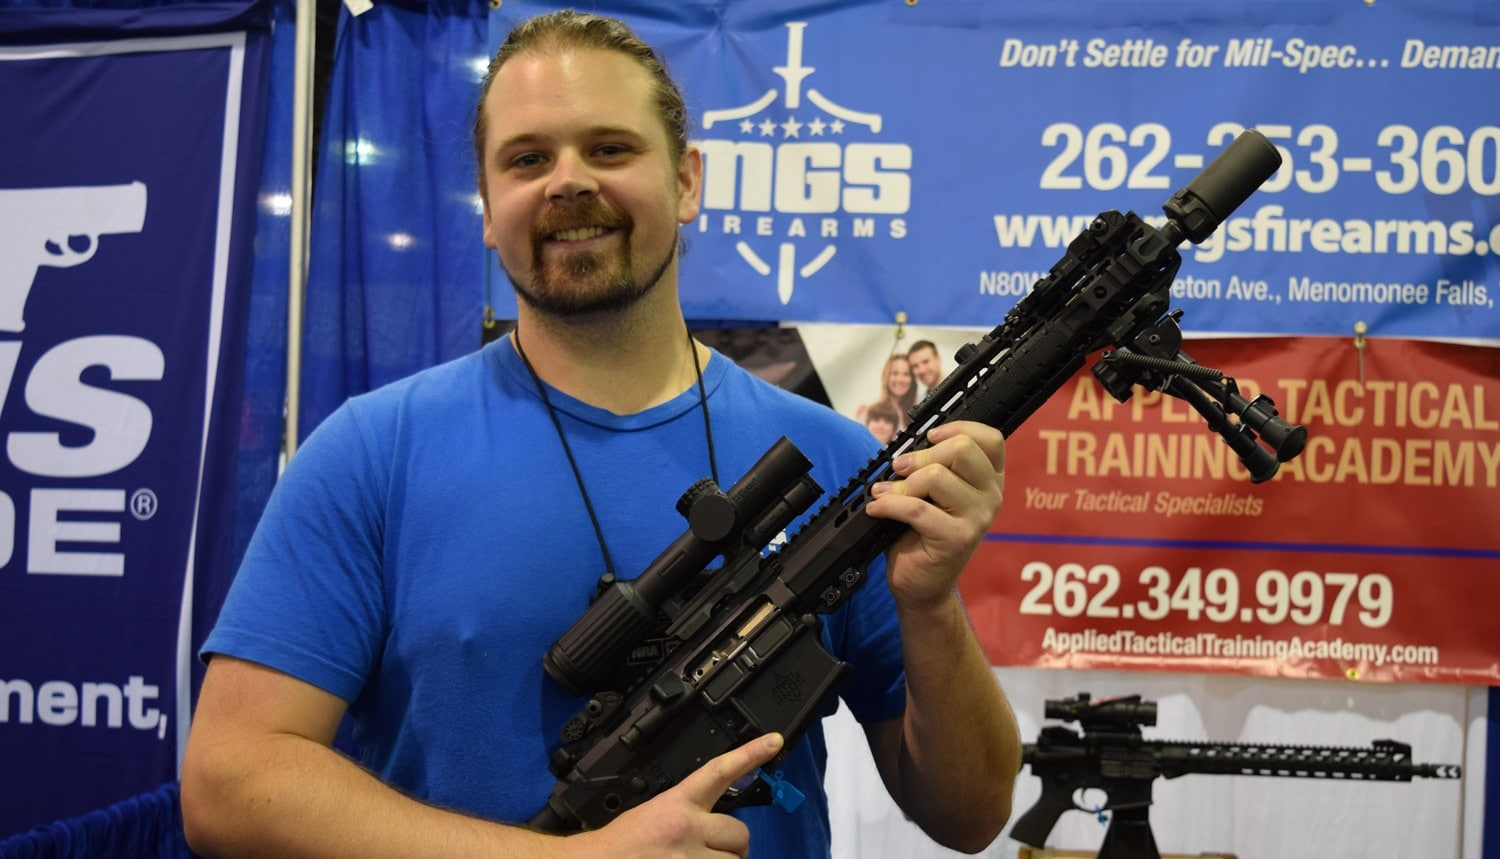 Pulling out all the gear with MGS Firearms. (Photo: Daniel Terrill/Guns.com)